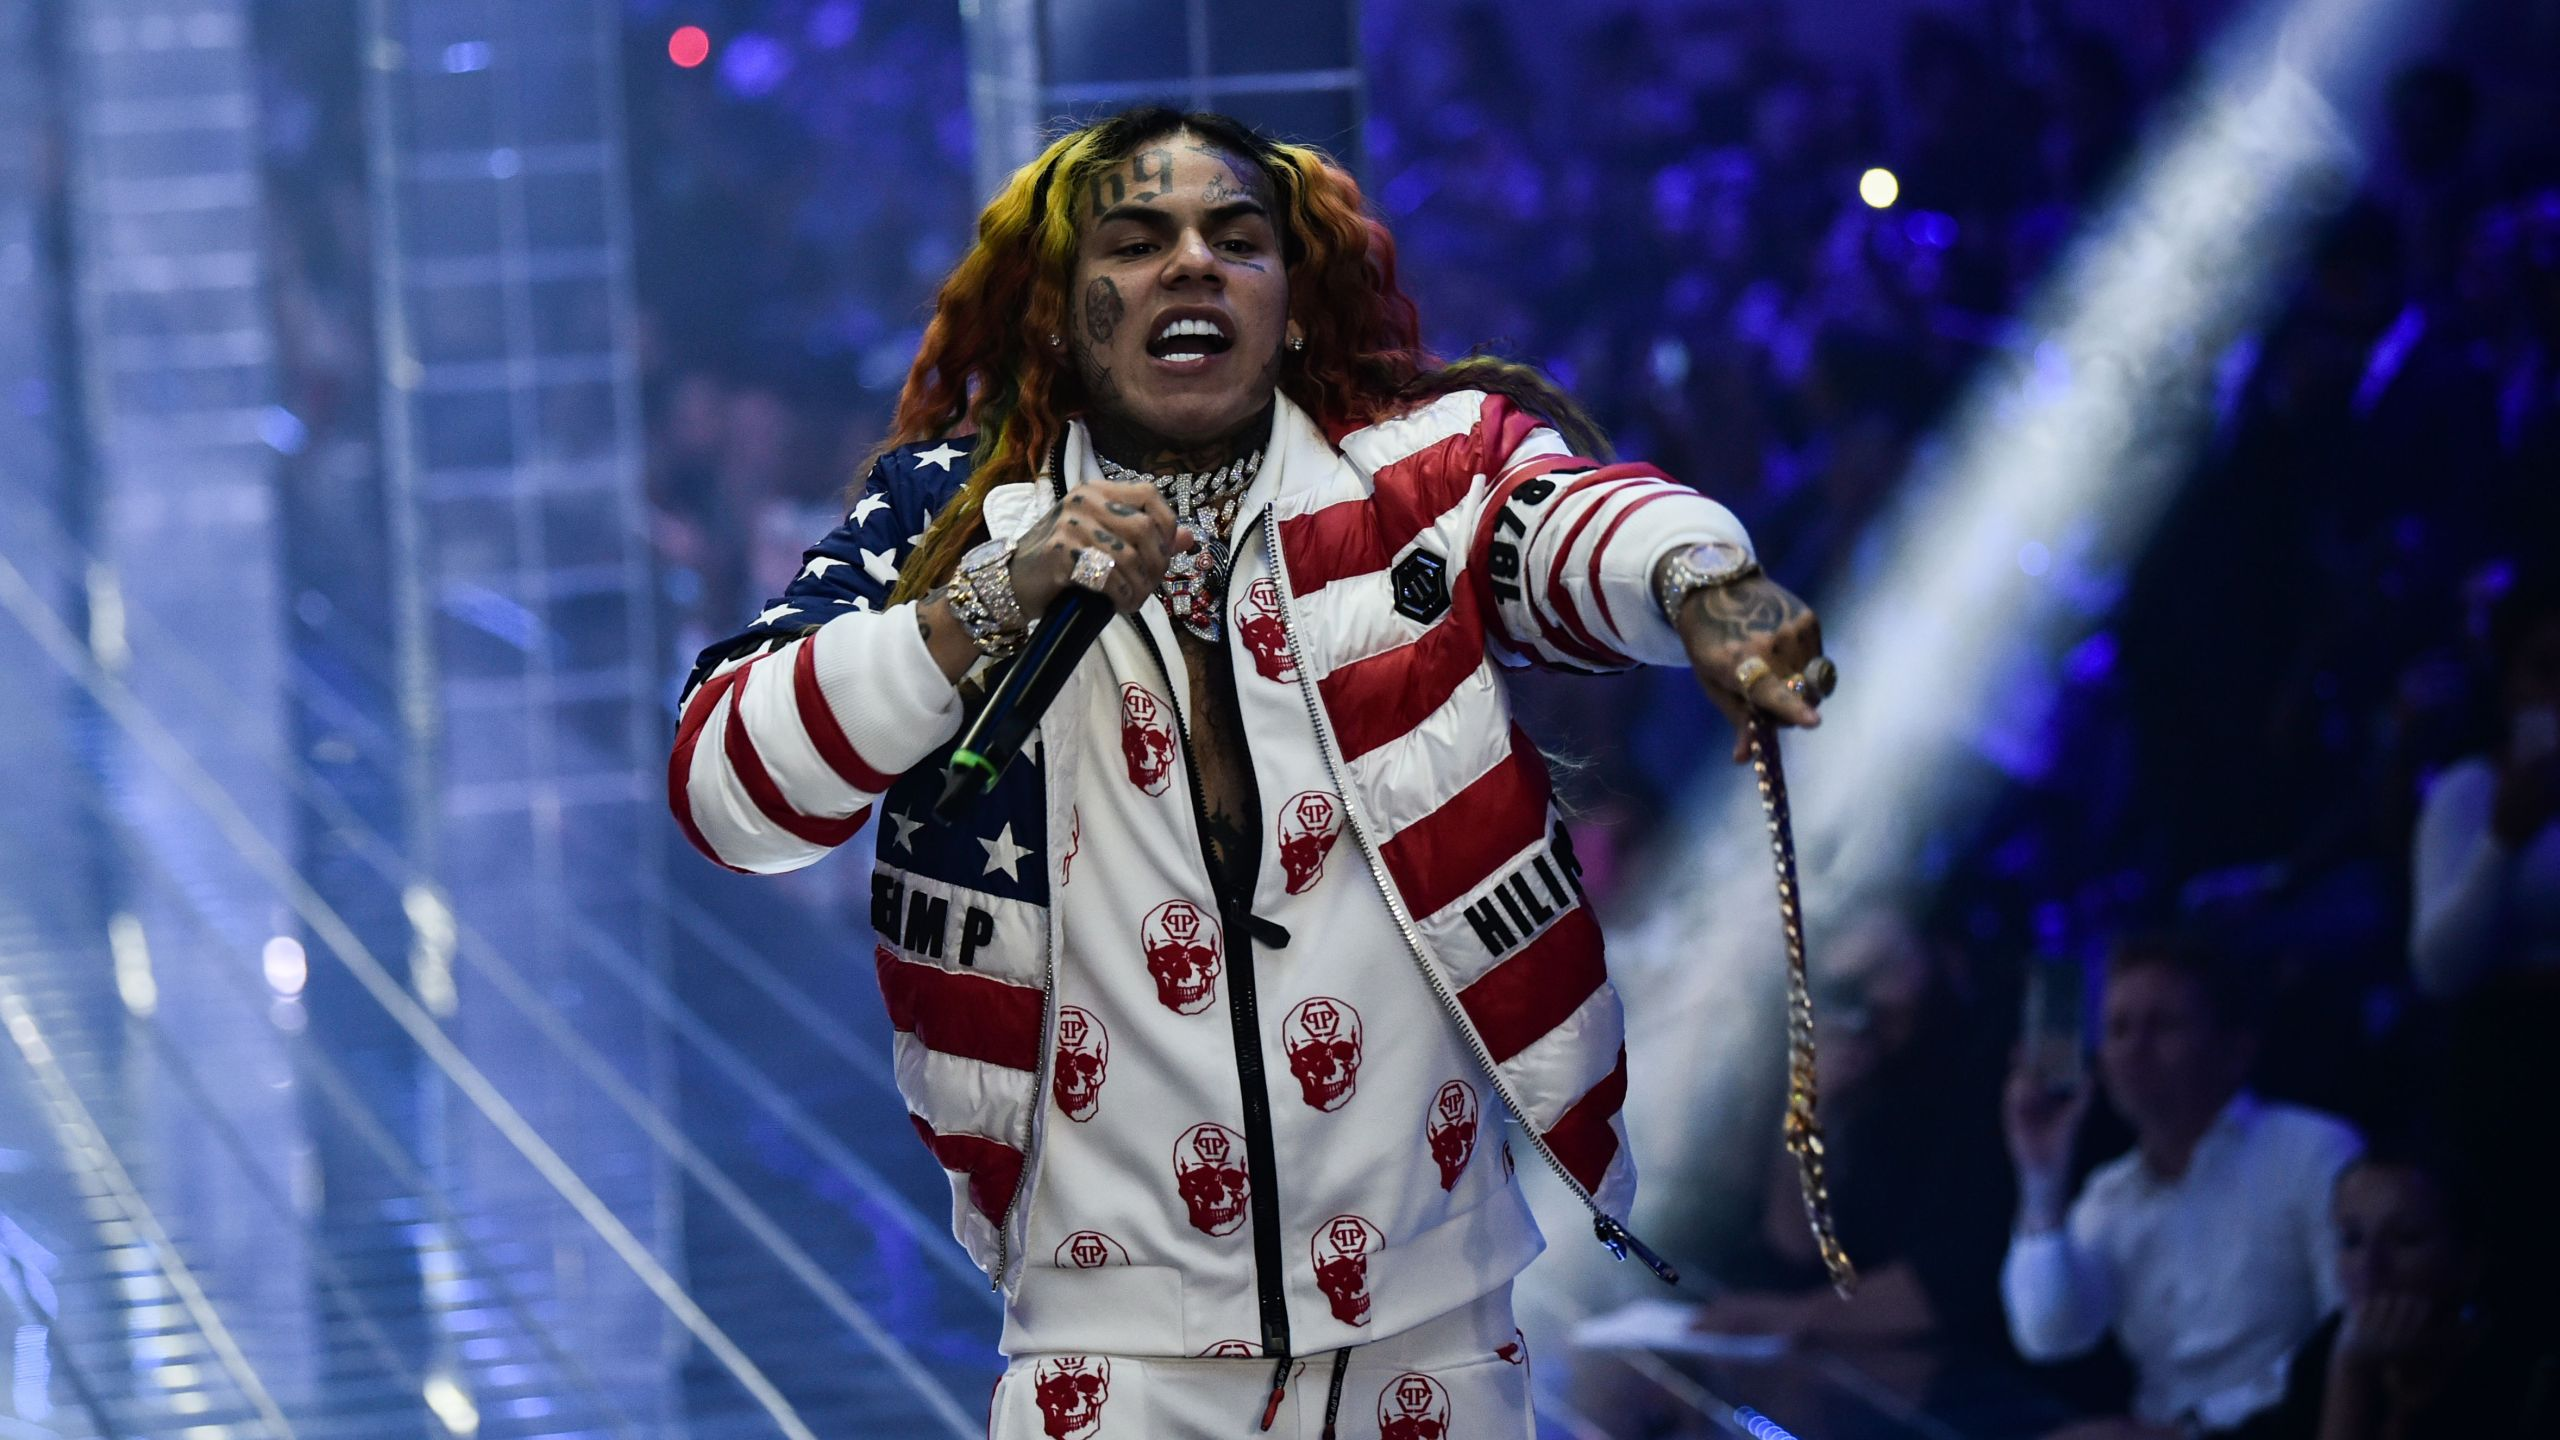 Tekashi 6ix9ine performs during the Philipp Plein fashion showw as part of the Women's Spring/Summer 2019 fashion week in Milan, on Sept. 21, 2018. (Credit: MARCO BERTORELLO/AFP via Getty Images)